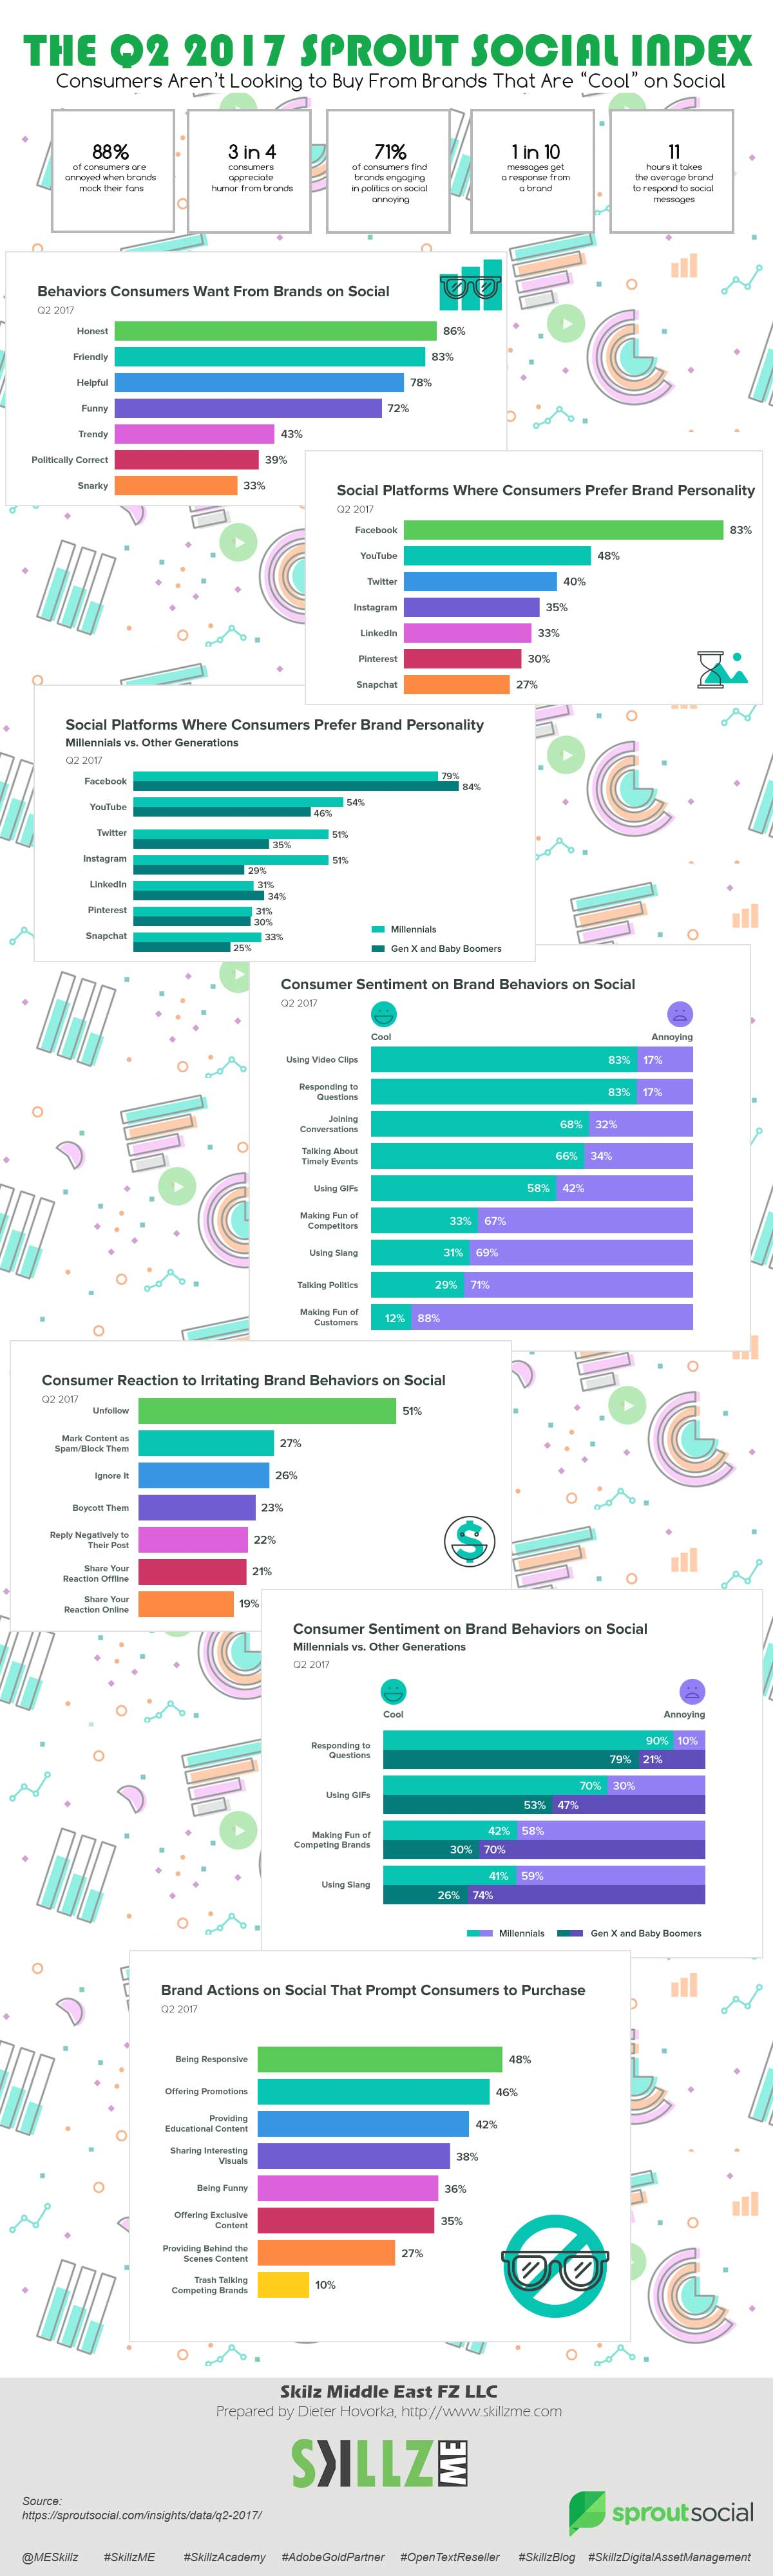 Q2 2017 Sprout Social Index Infographic